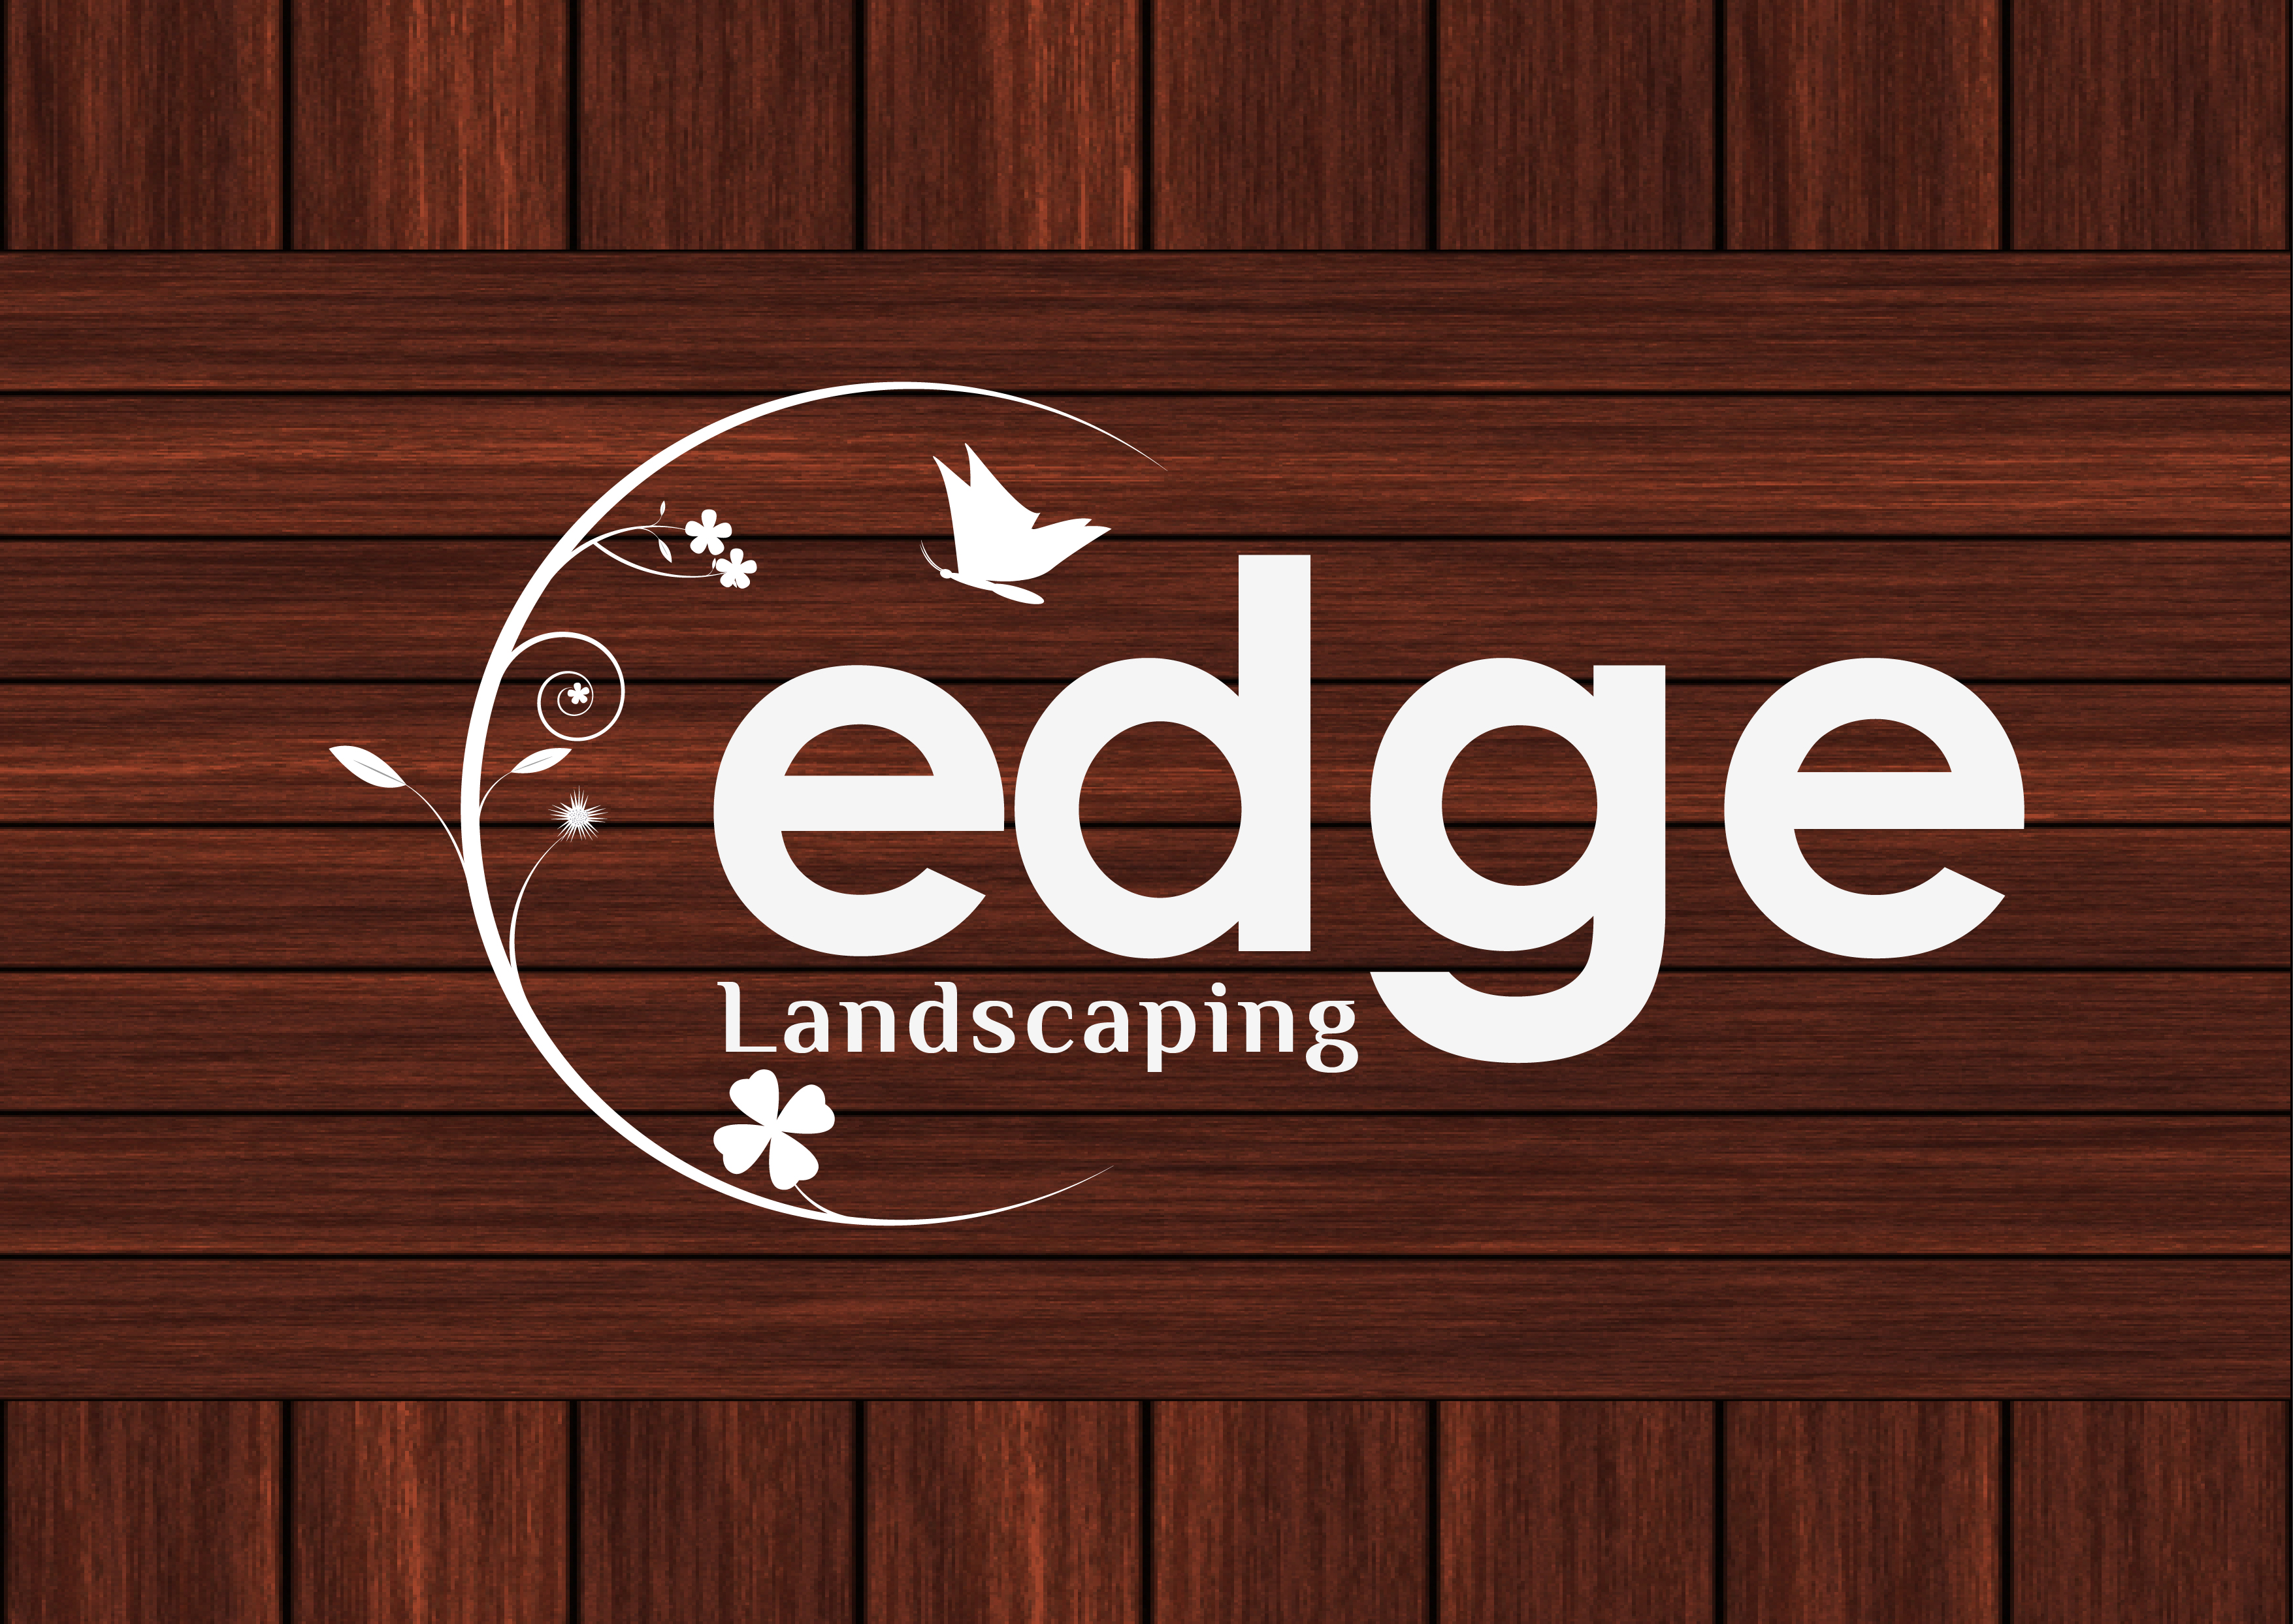 Logo Design by 3draw - Entry No. 98 in the Logo Design Contest Inspiring Logo Design for Edge Landscaping.